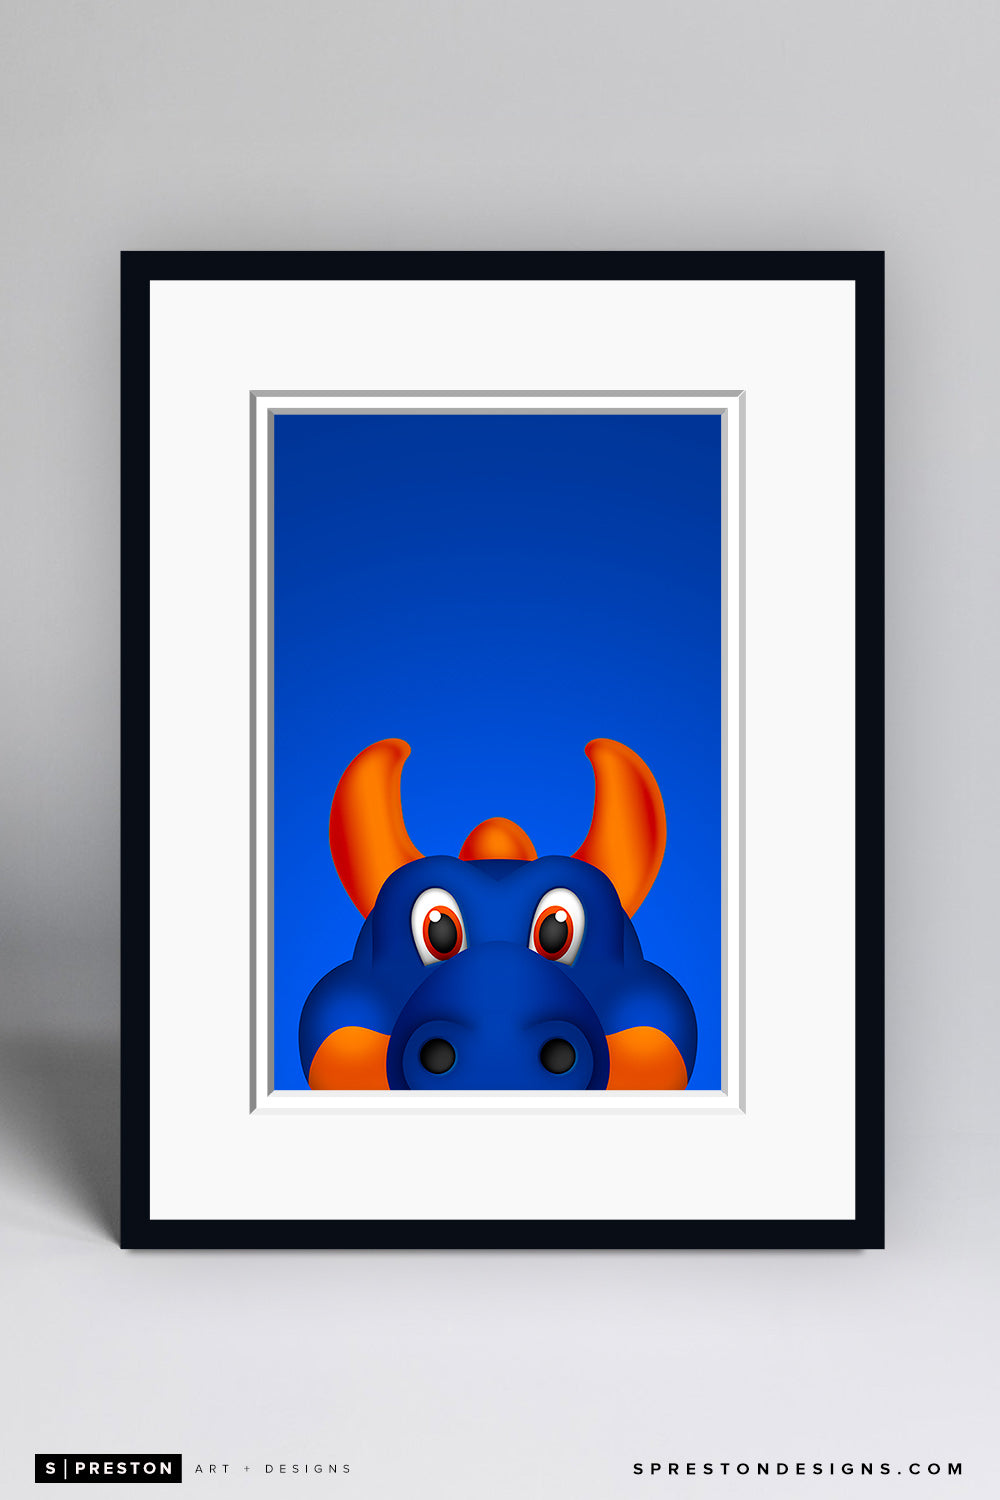 Minimalist Sparky The Dragon - New York Islanders - S. Preston